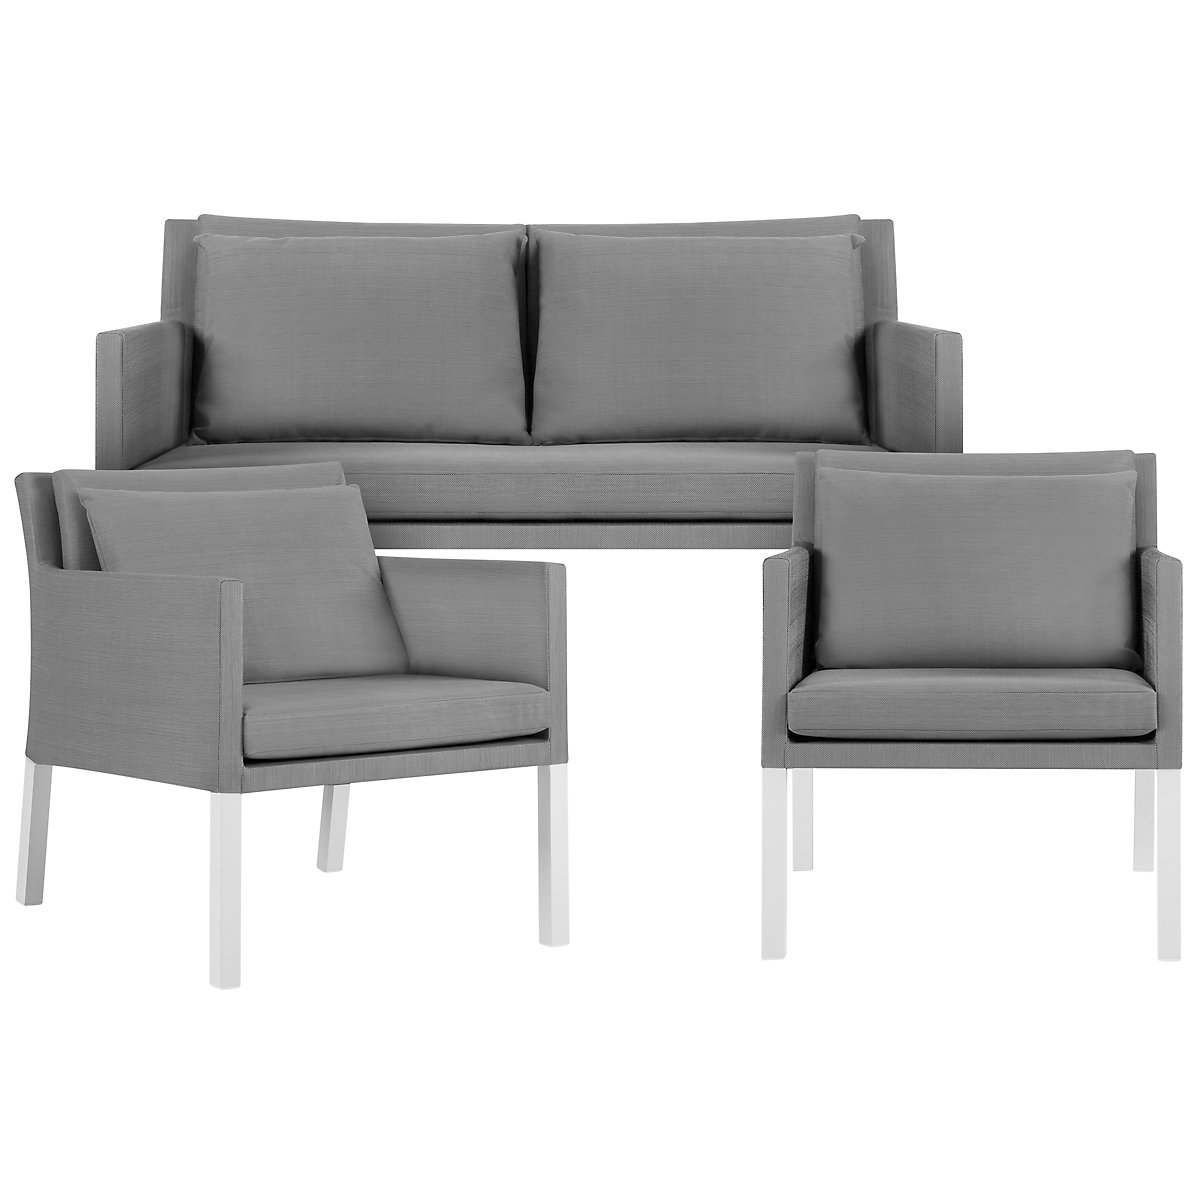 City Furniture: Lisbon Gray Outdoor Living Room Set